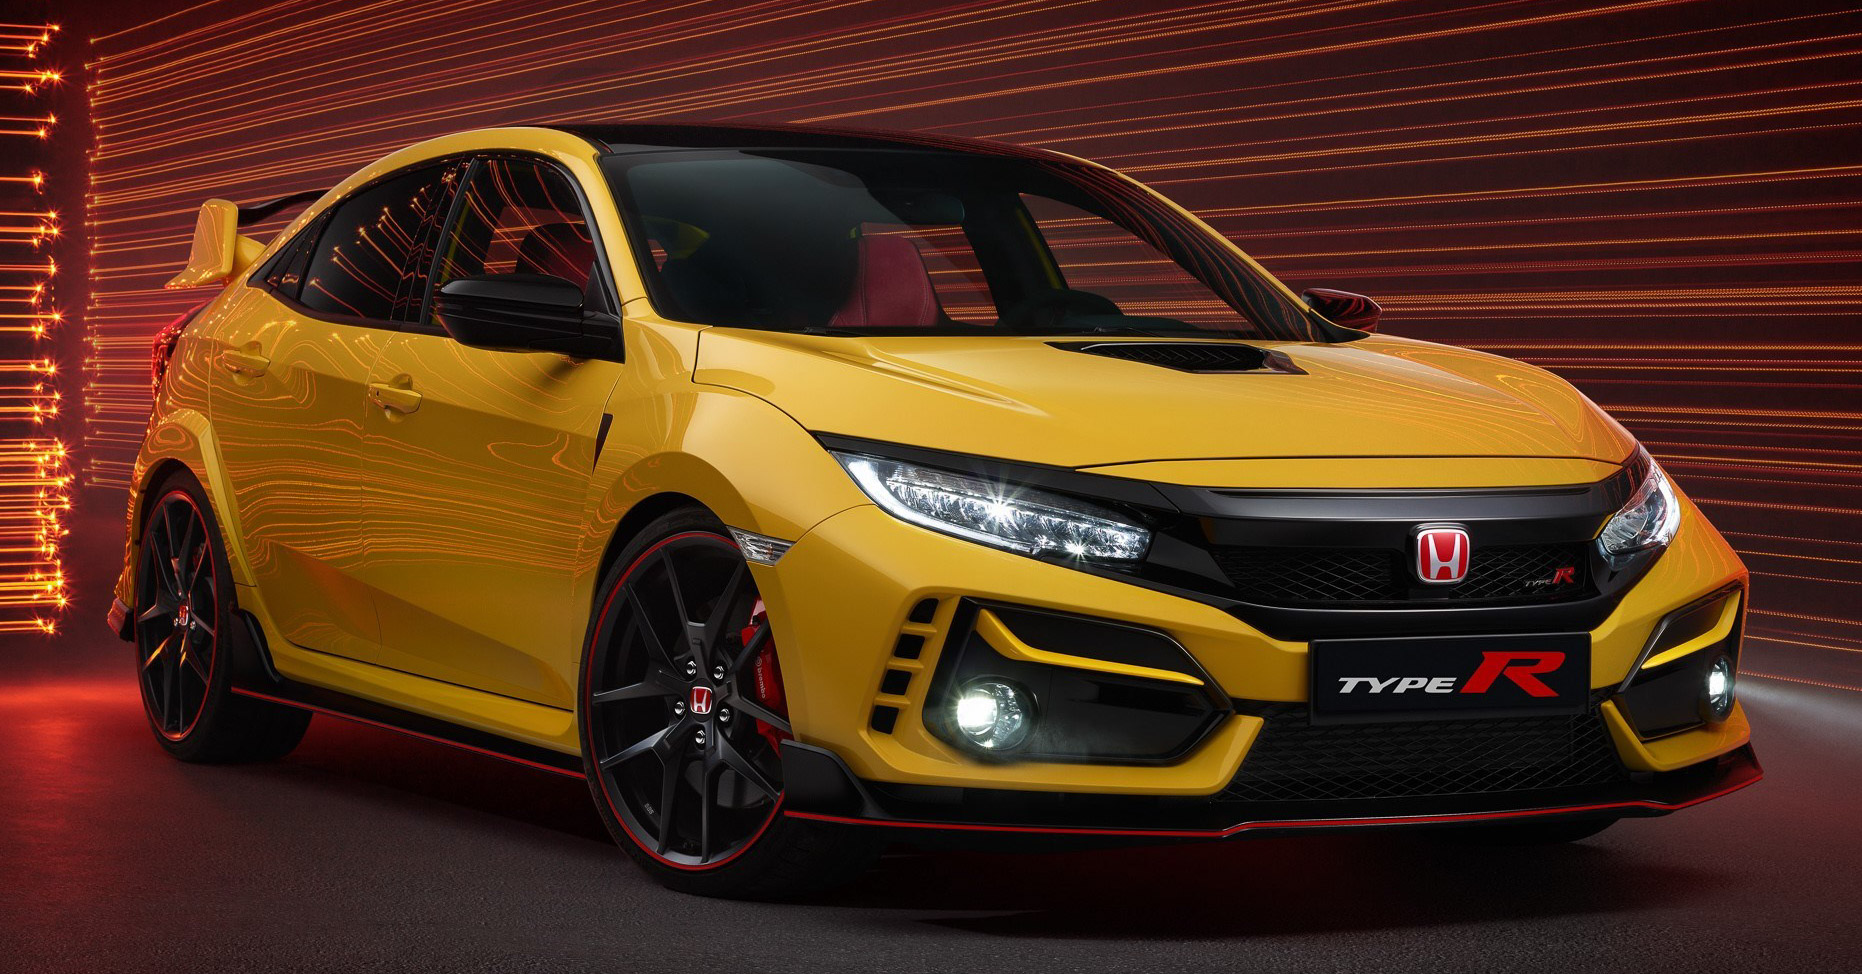 2020 Honda Civic Type R Limited Edition Revealed 47 Kg Lighter Limited Units New Sport Line Joins Range Paultan Org